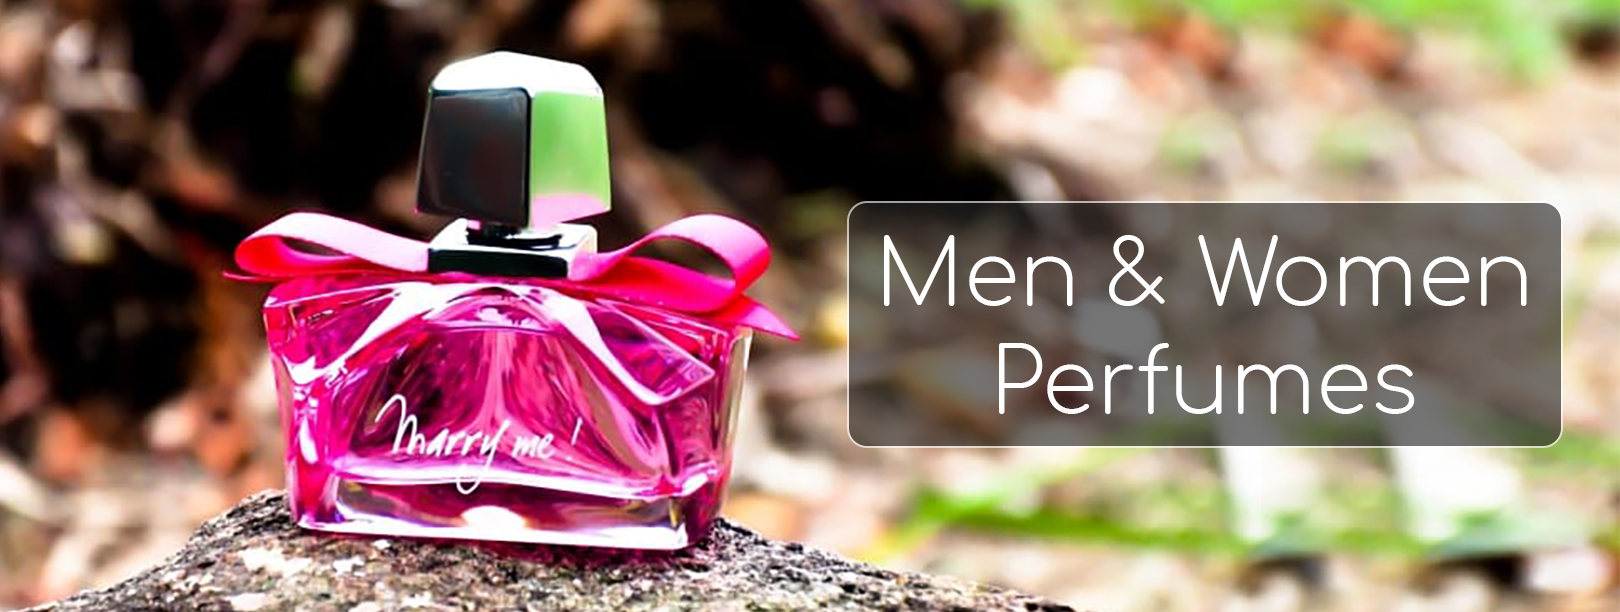 Myntra Men & Women Perfumes